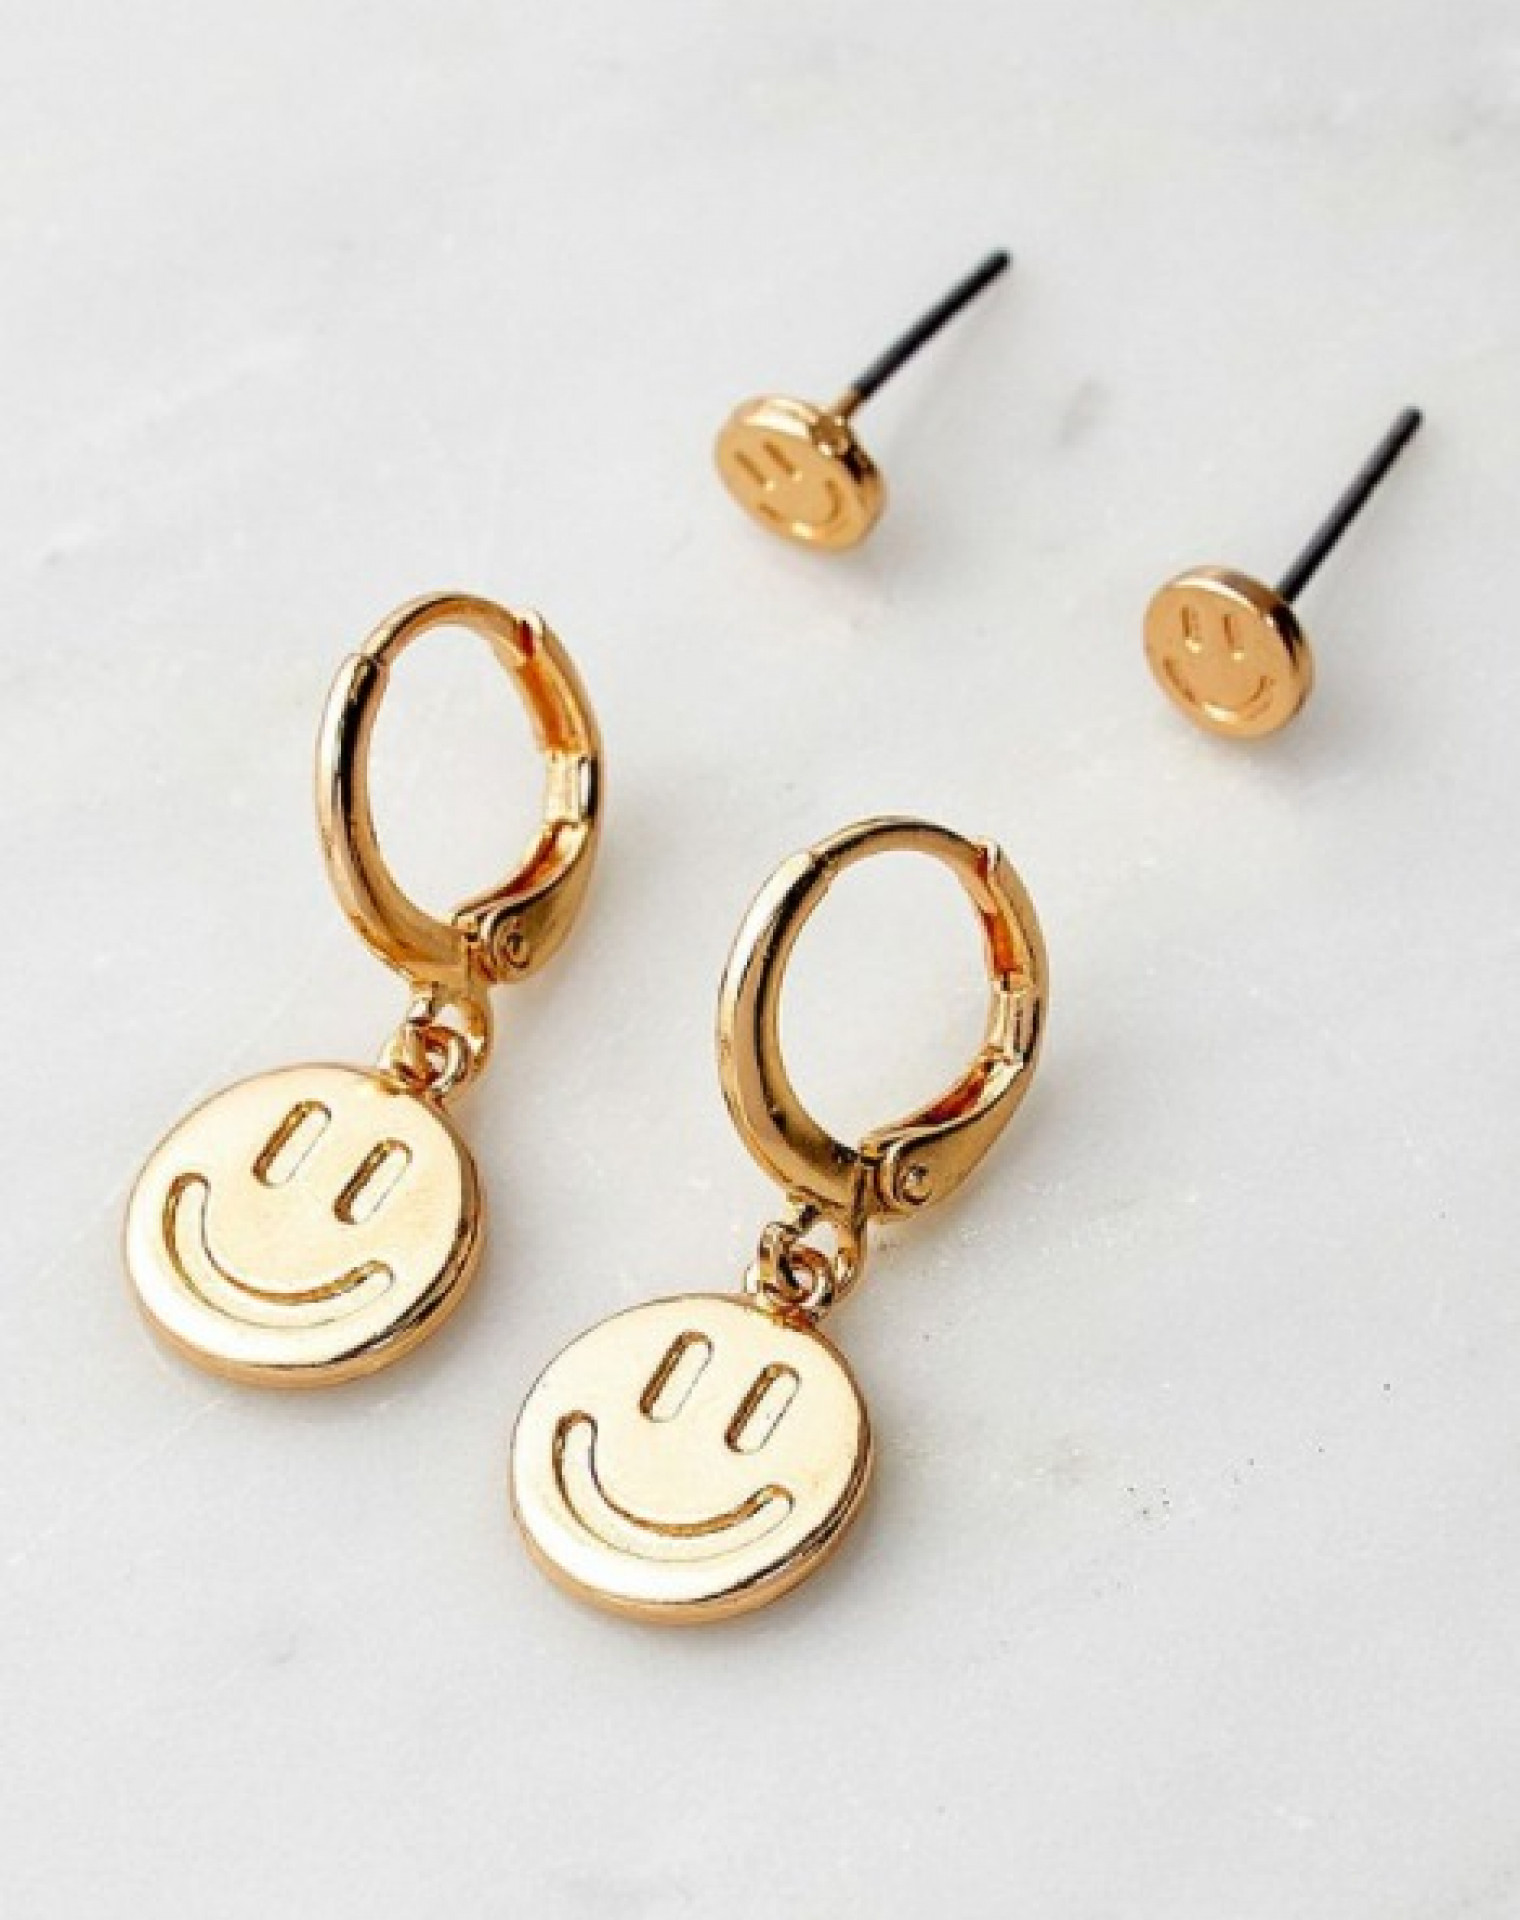 Smiley Metal Earrings 4-Pack